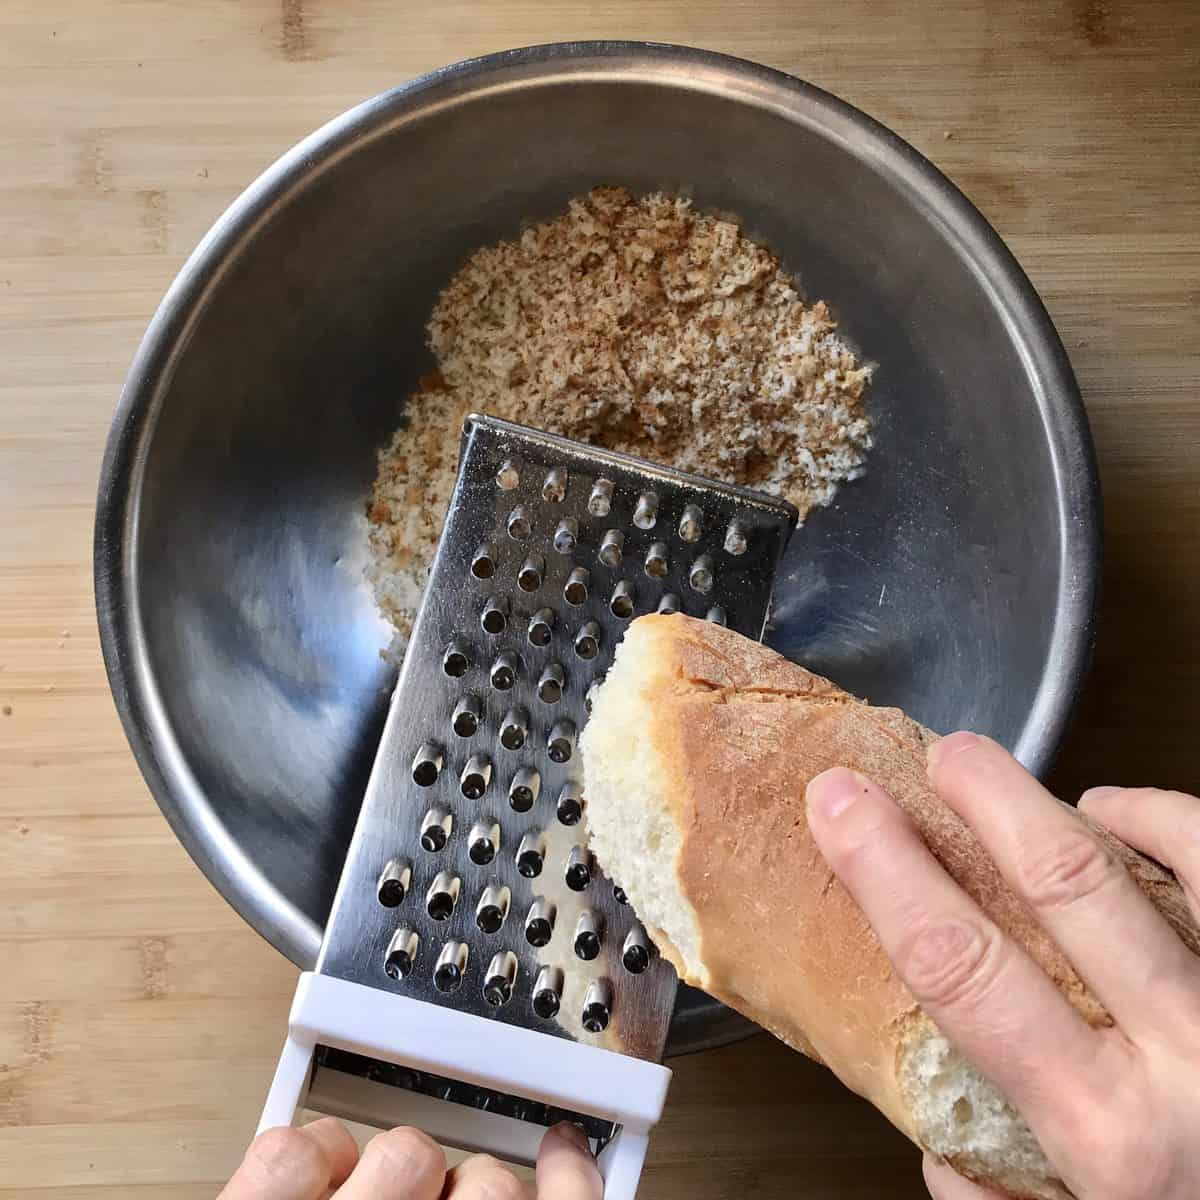 Day old bread in teh process of being grated.